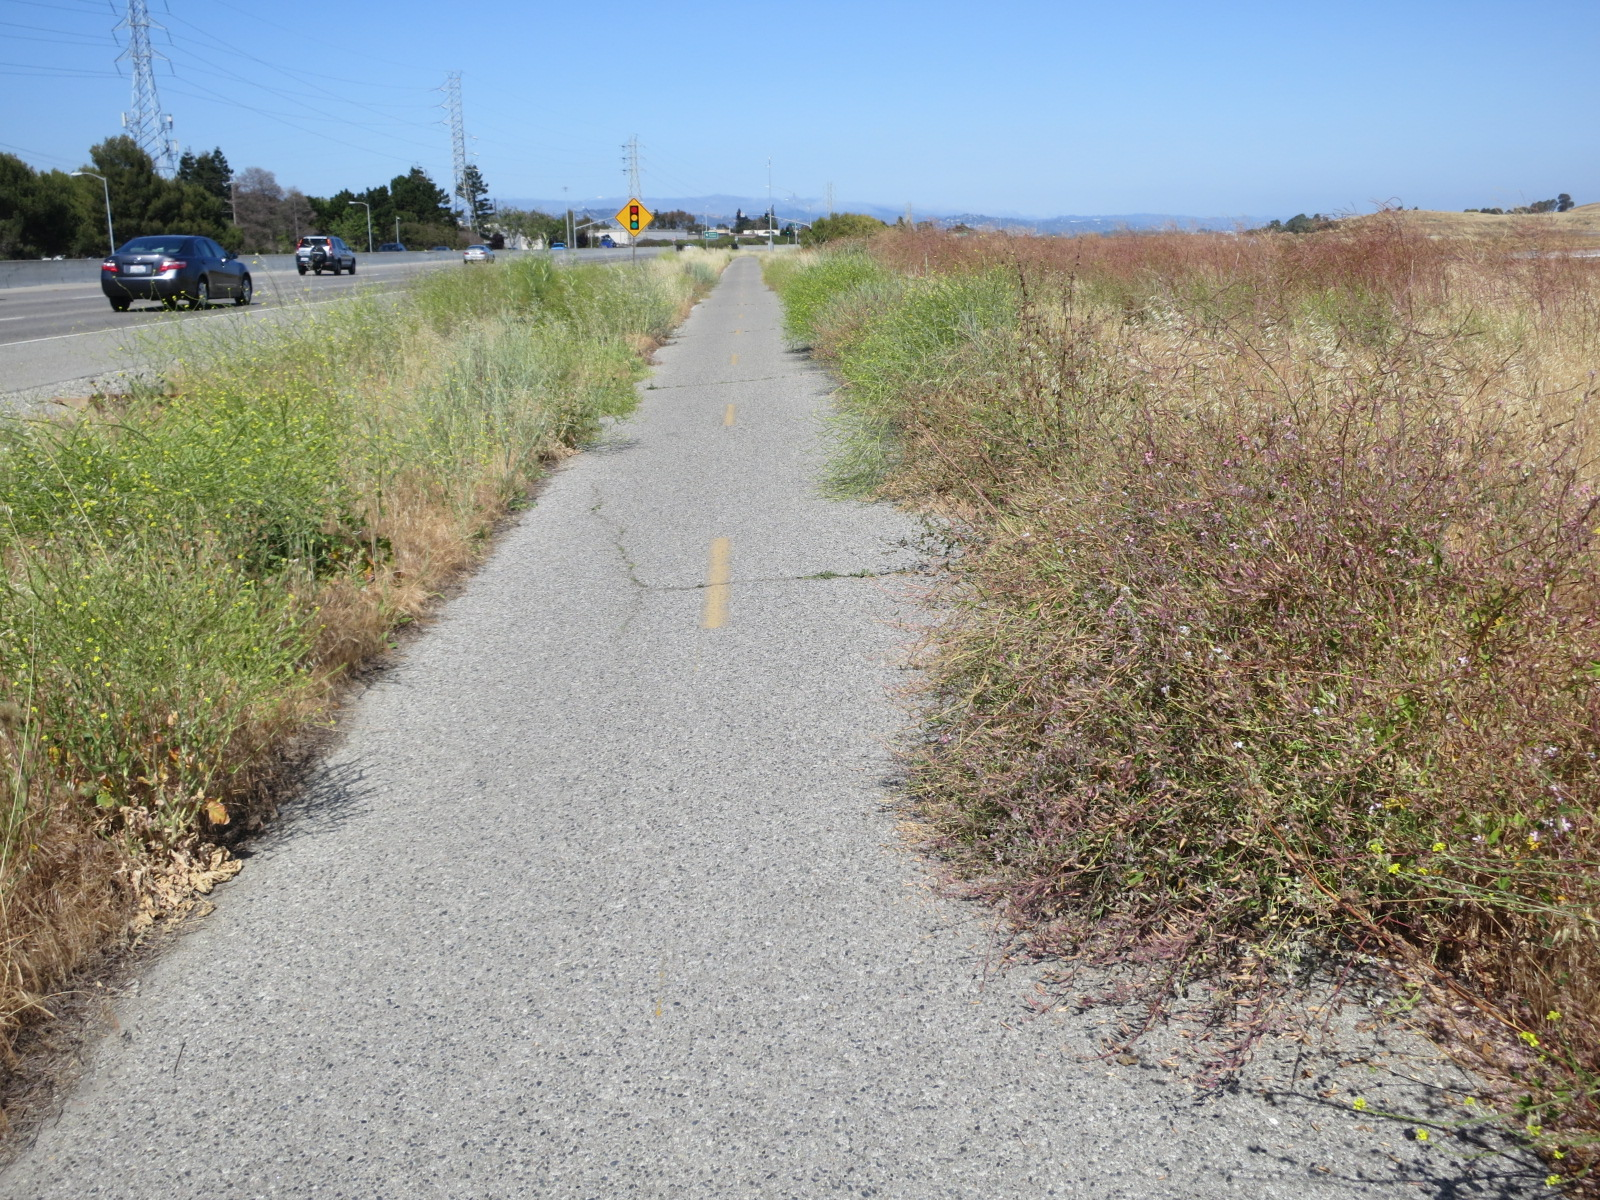 Weeds overgrowing the Bay Trail in Menlo Park